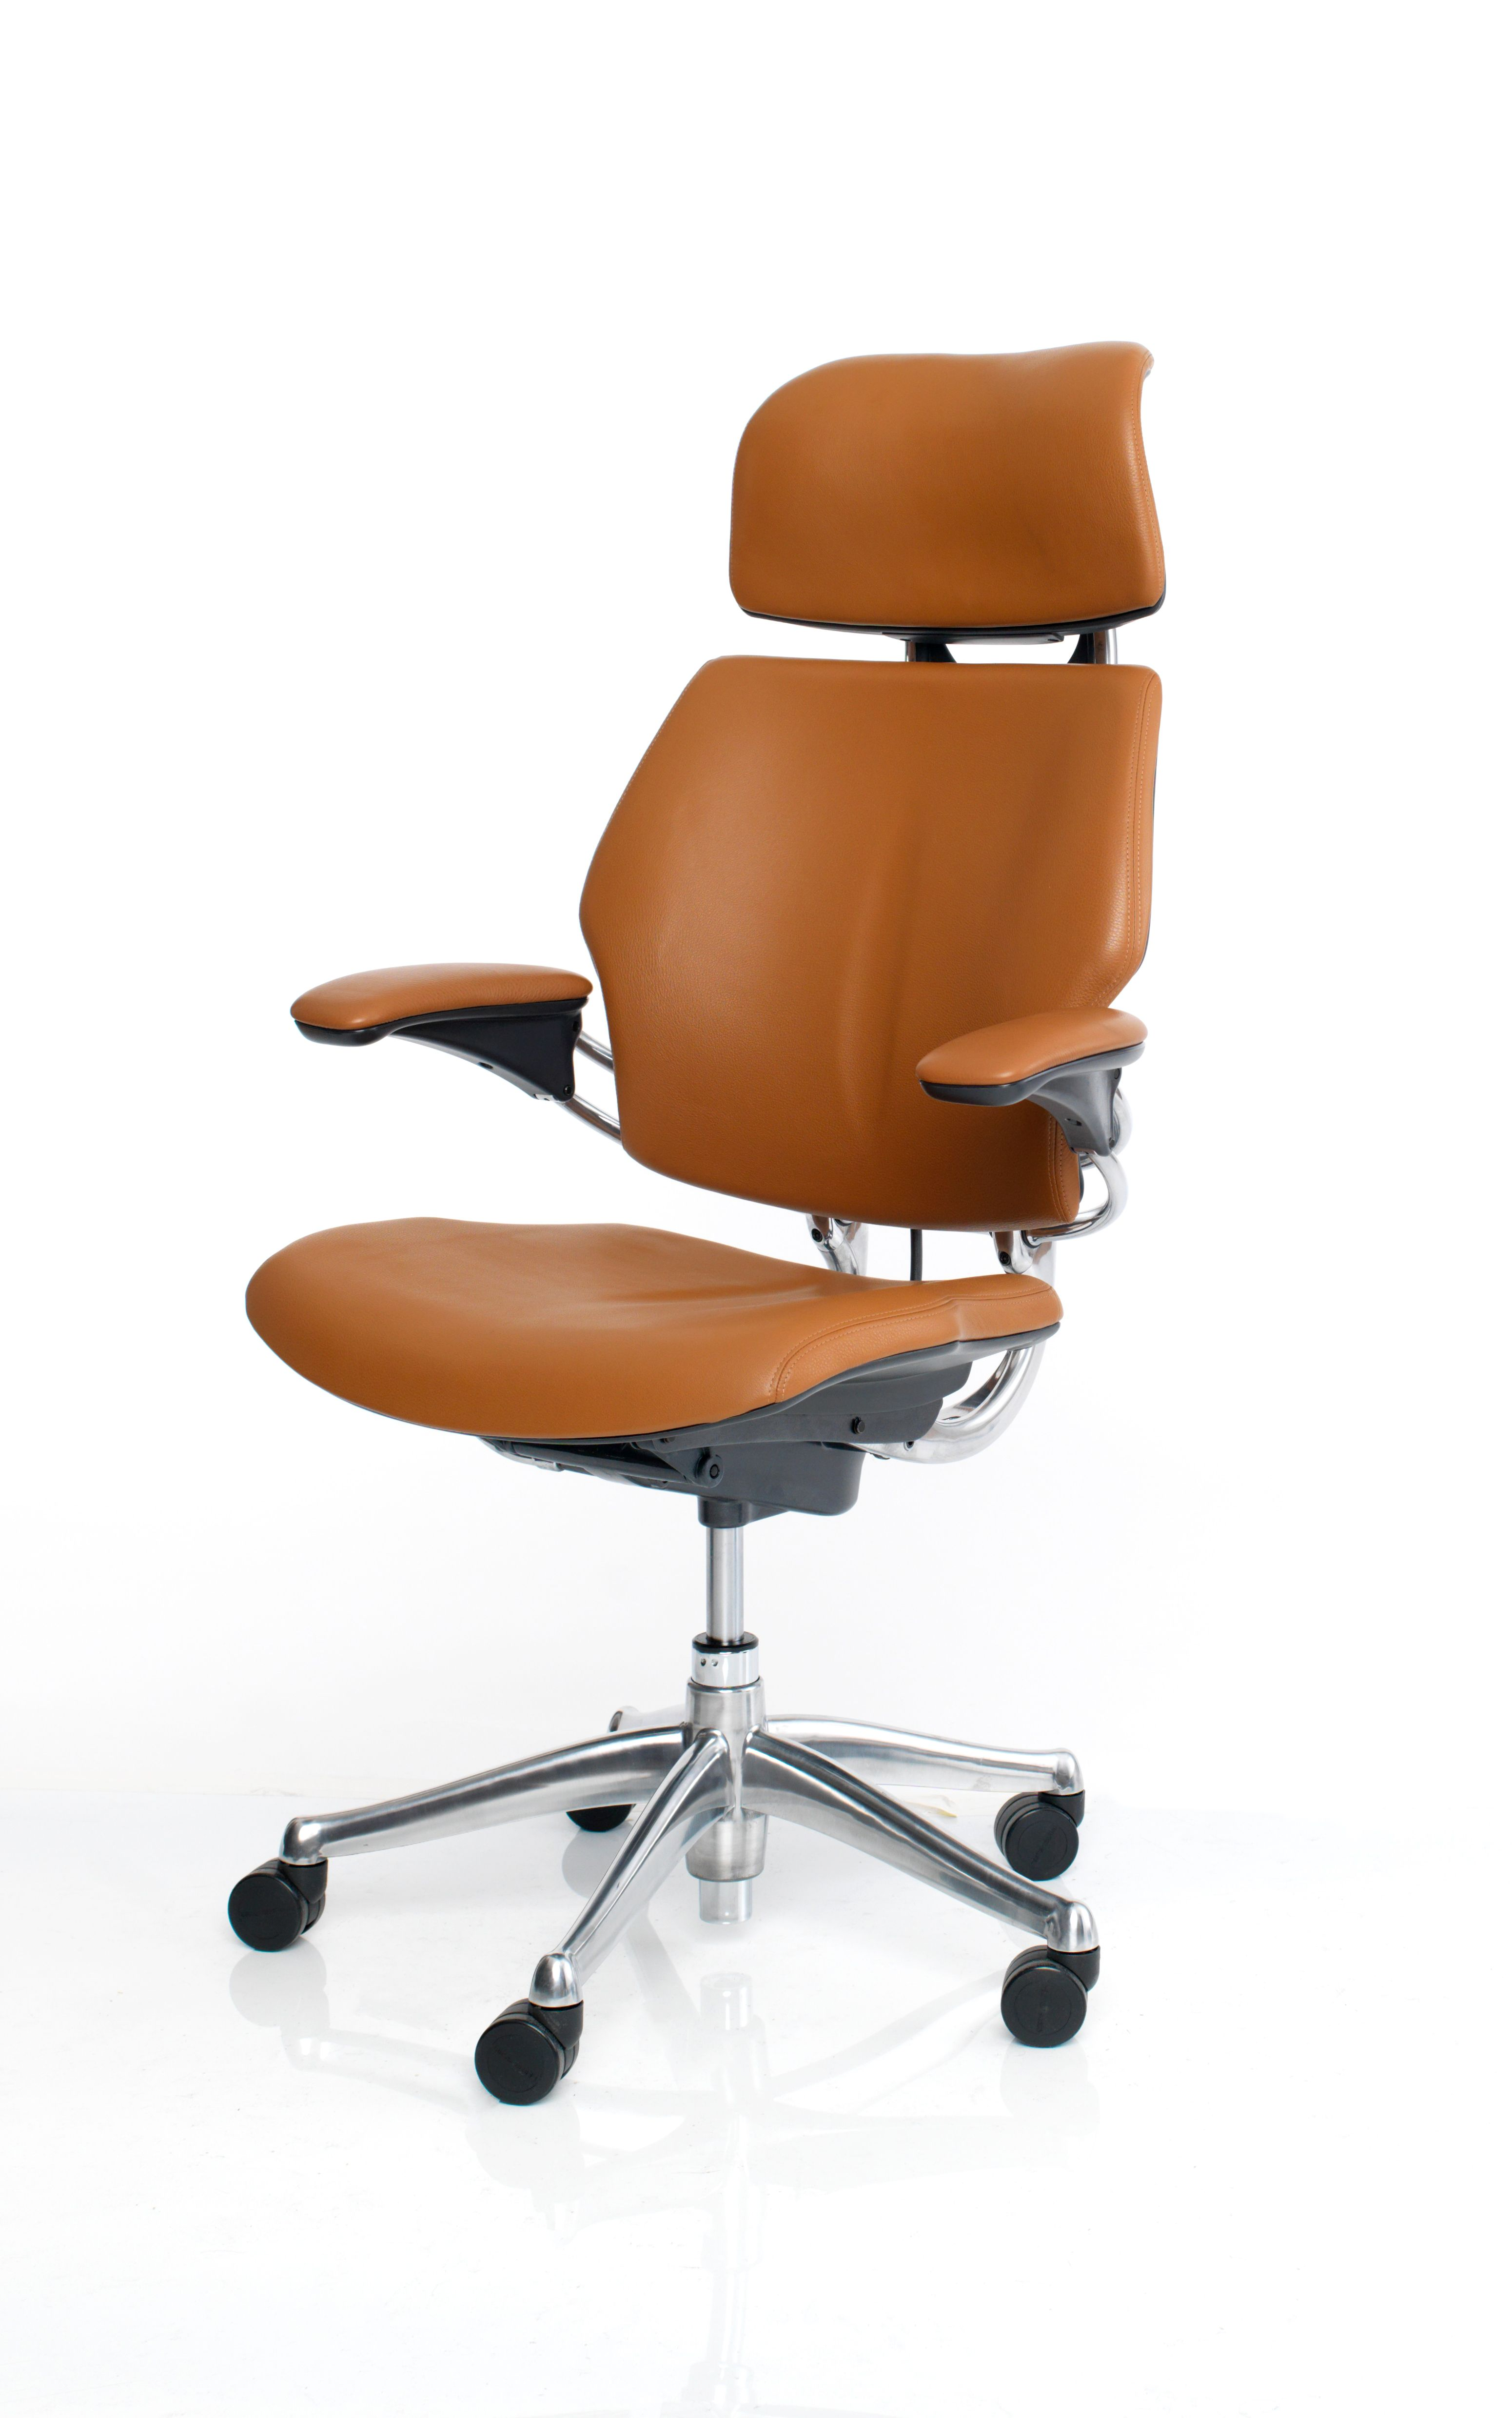 Freedom Furniture Head Office Freedom Headrest Chair Humanscale Niels Diffrient Office